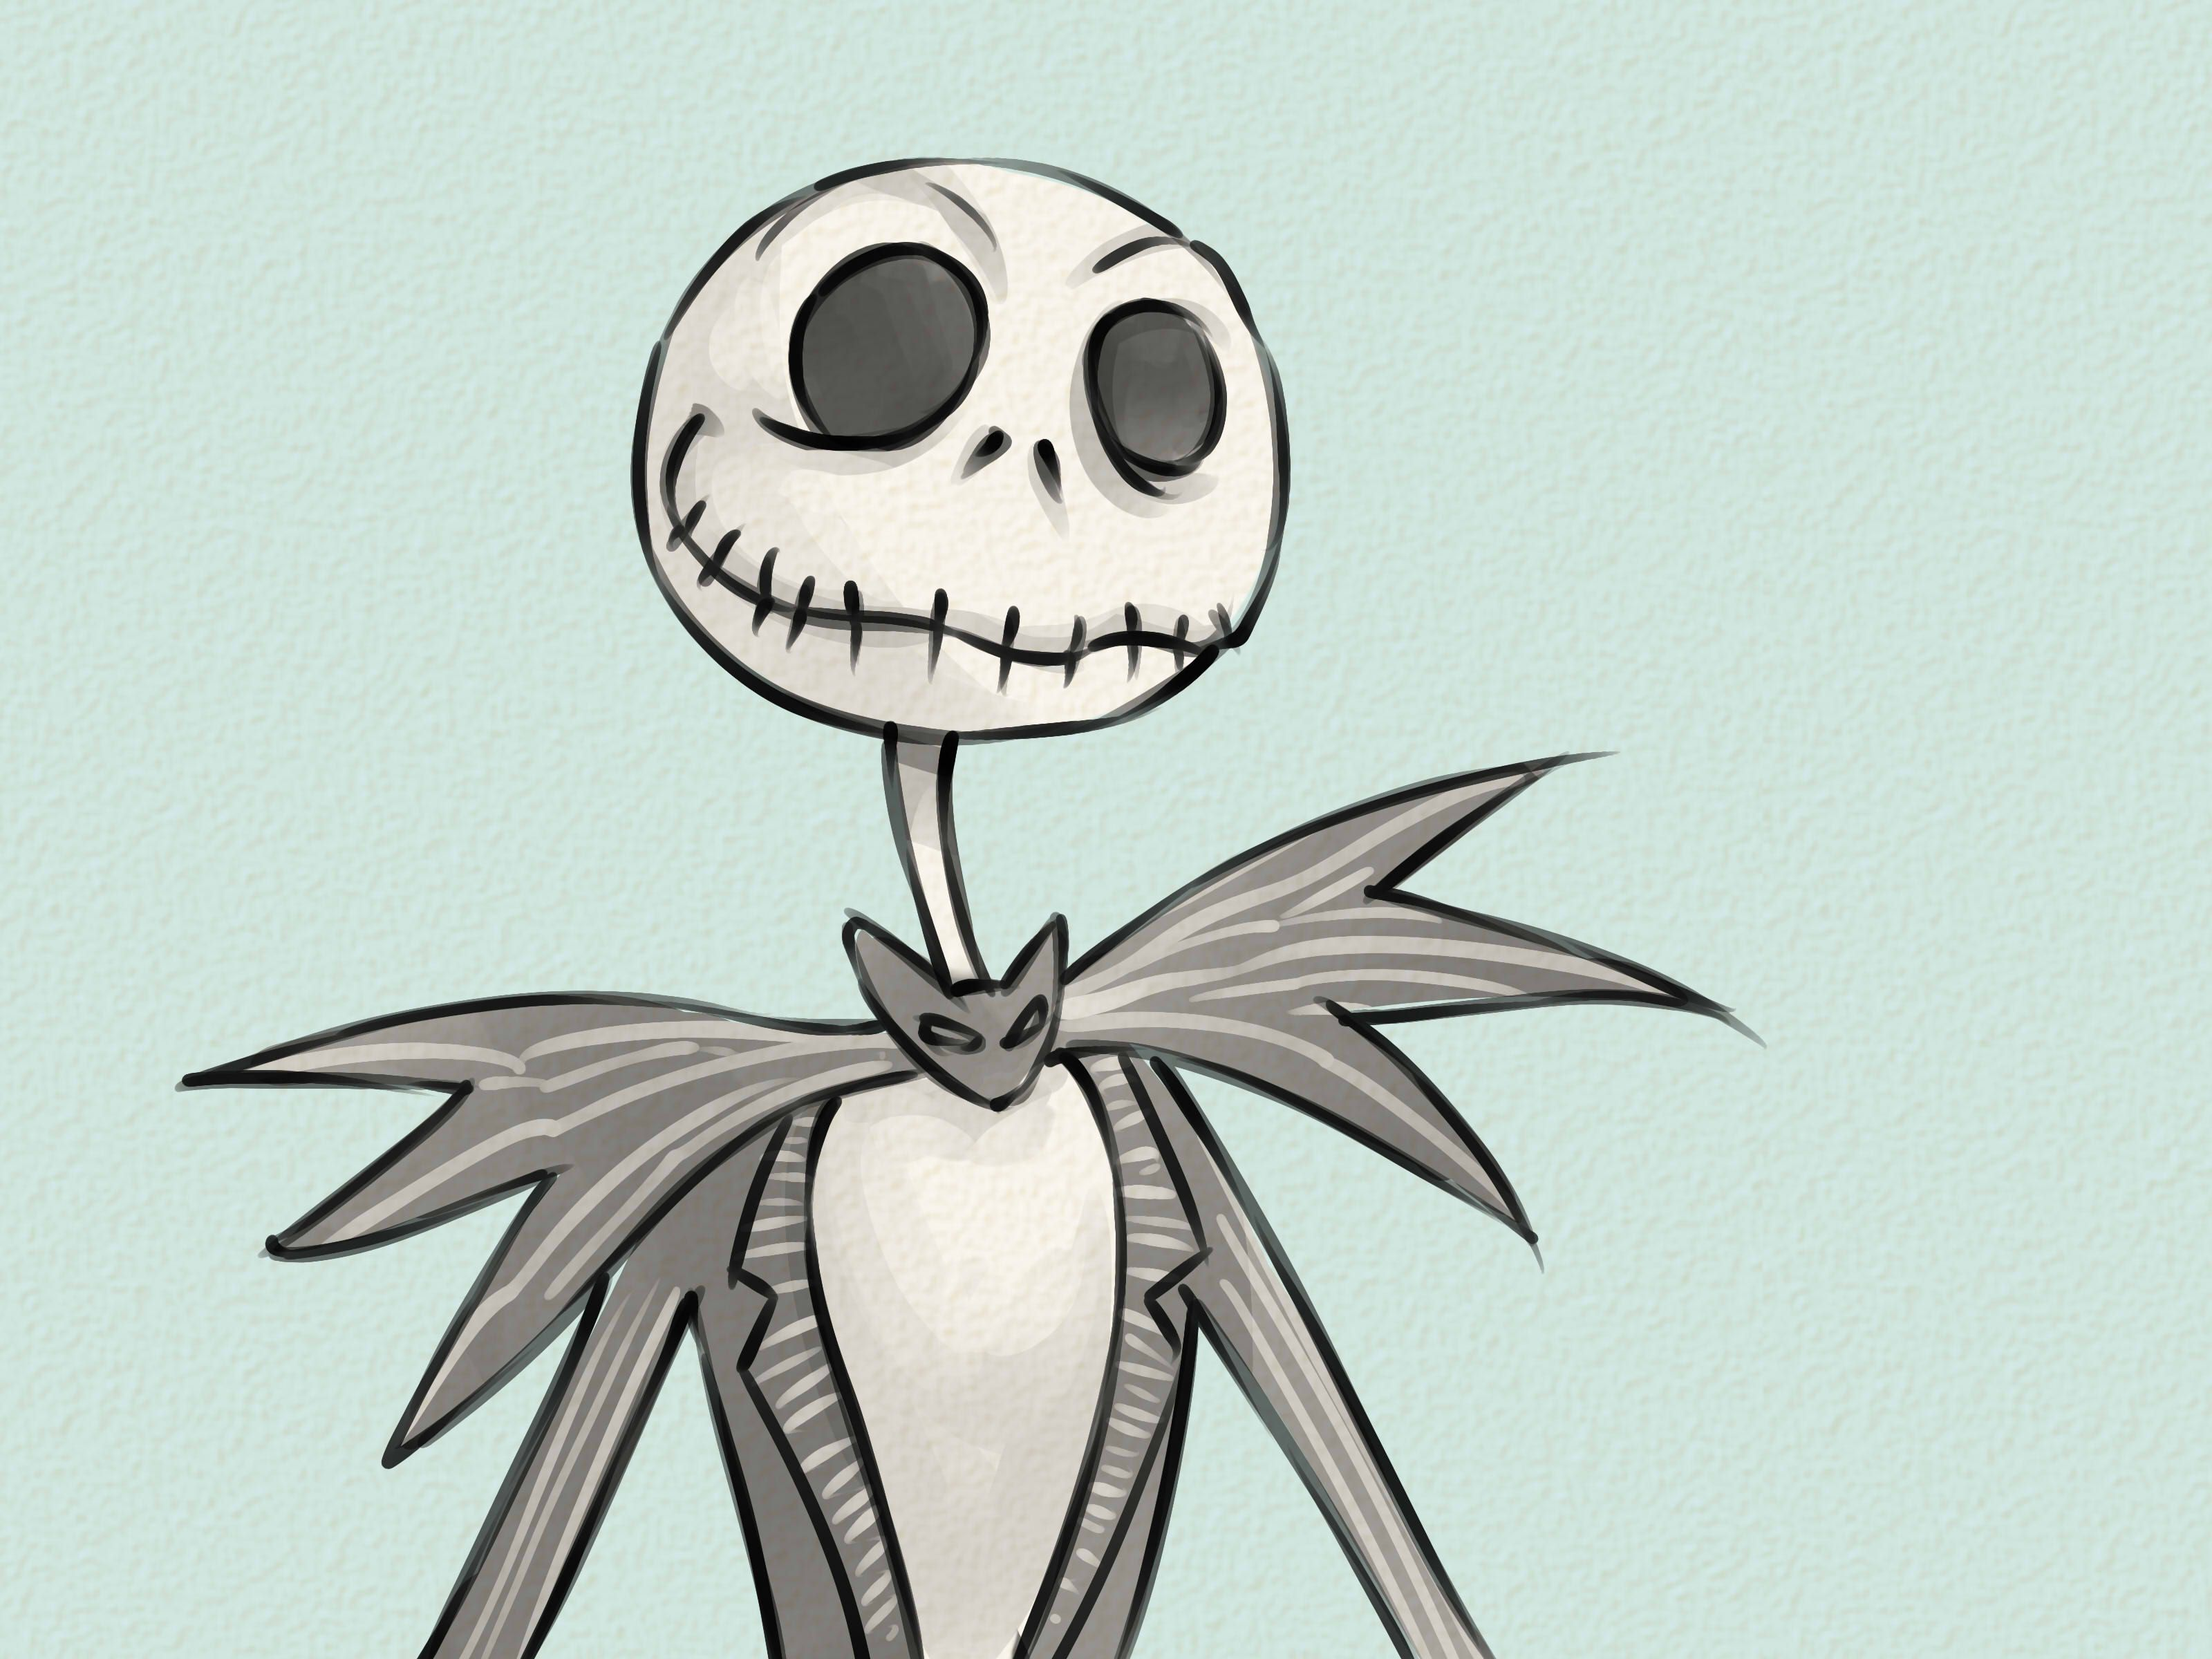 nightmare before christmas sketch - Yahoo Image Search Results ...